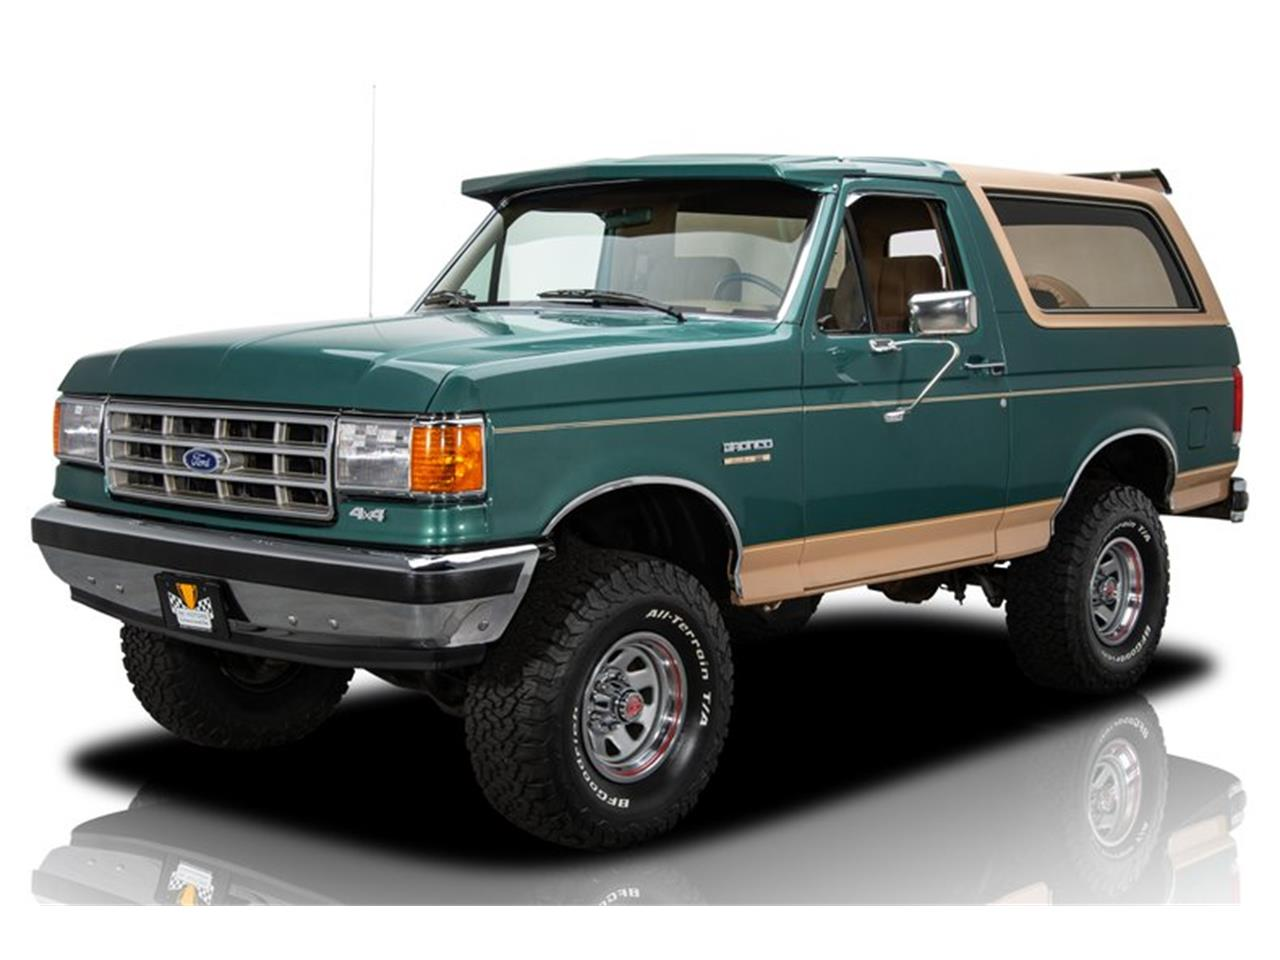 1988 Ford Bronco for sale in Charlotte, NC